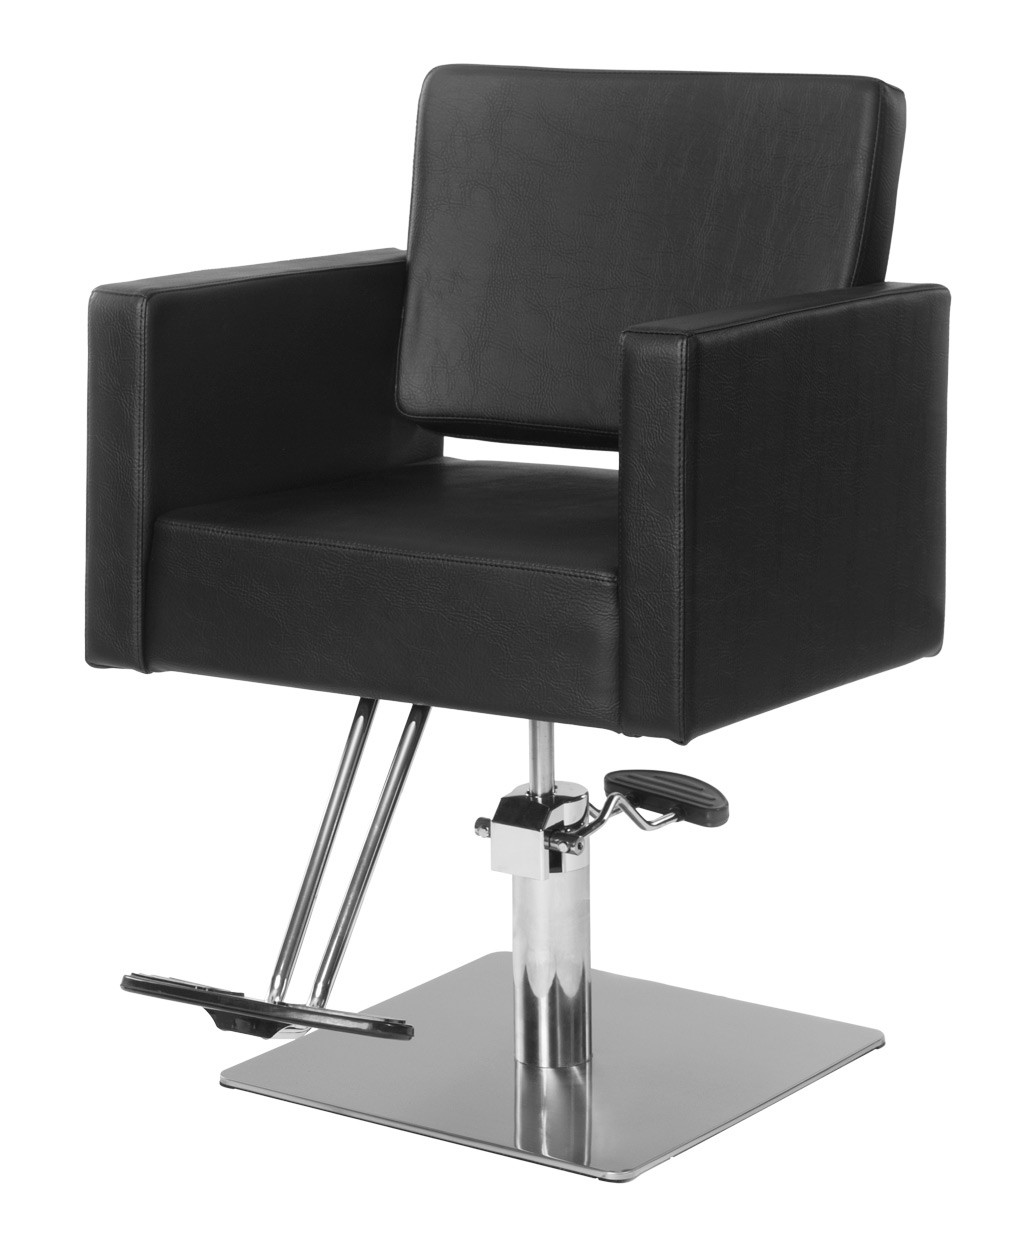 Hair Salon Chairs Styling Chairs from Buy Rite Beauty